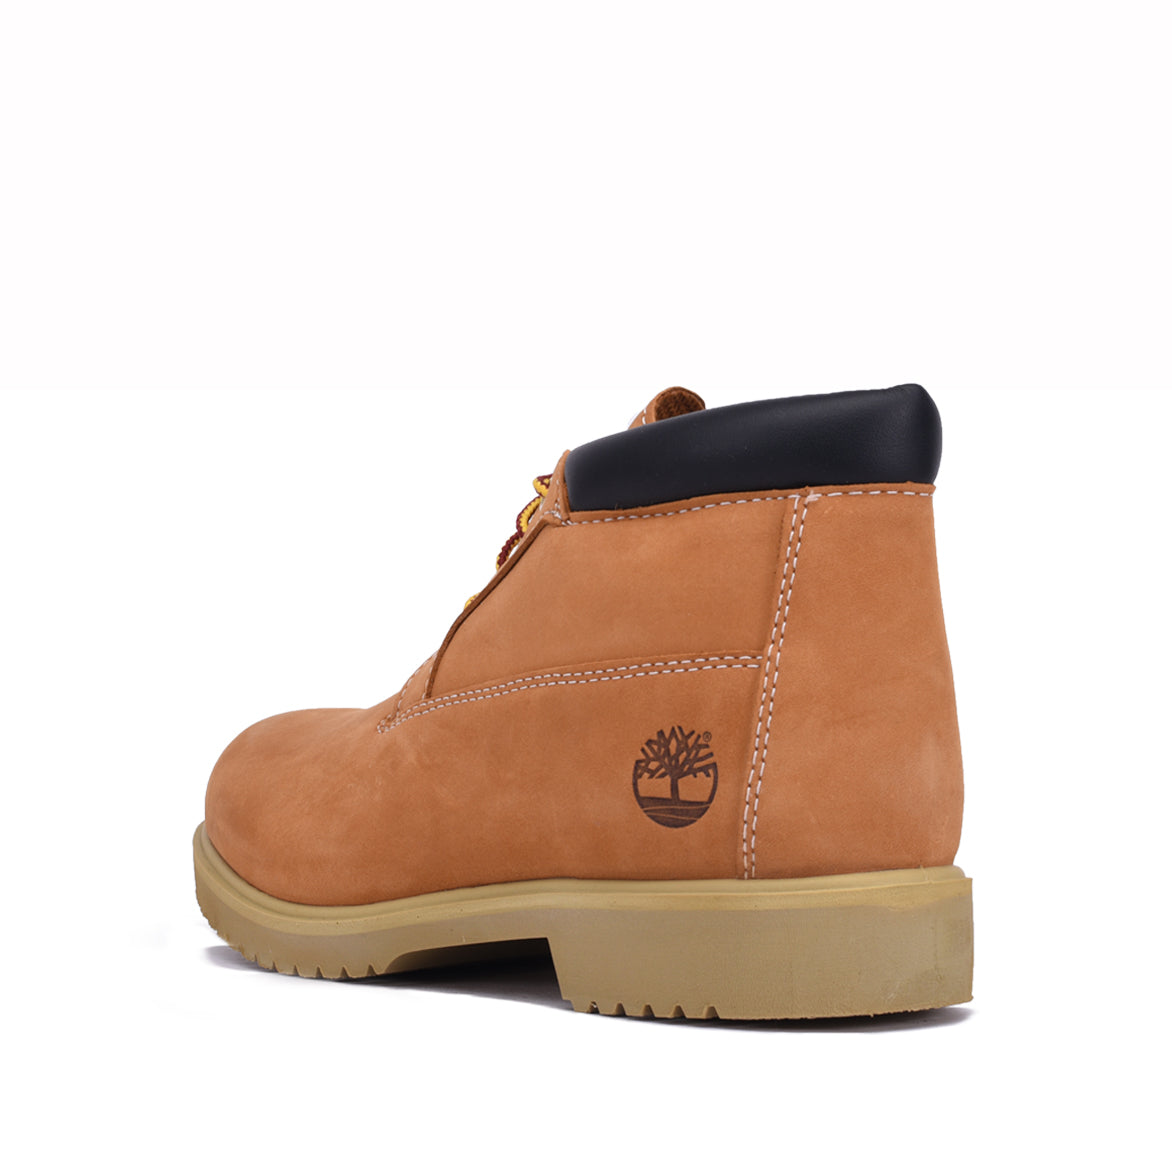 CLASSIC WATERPROOF CHUKKA - WHEAT NUBUCK